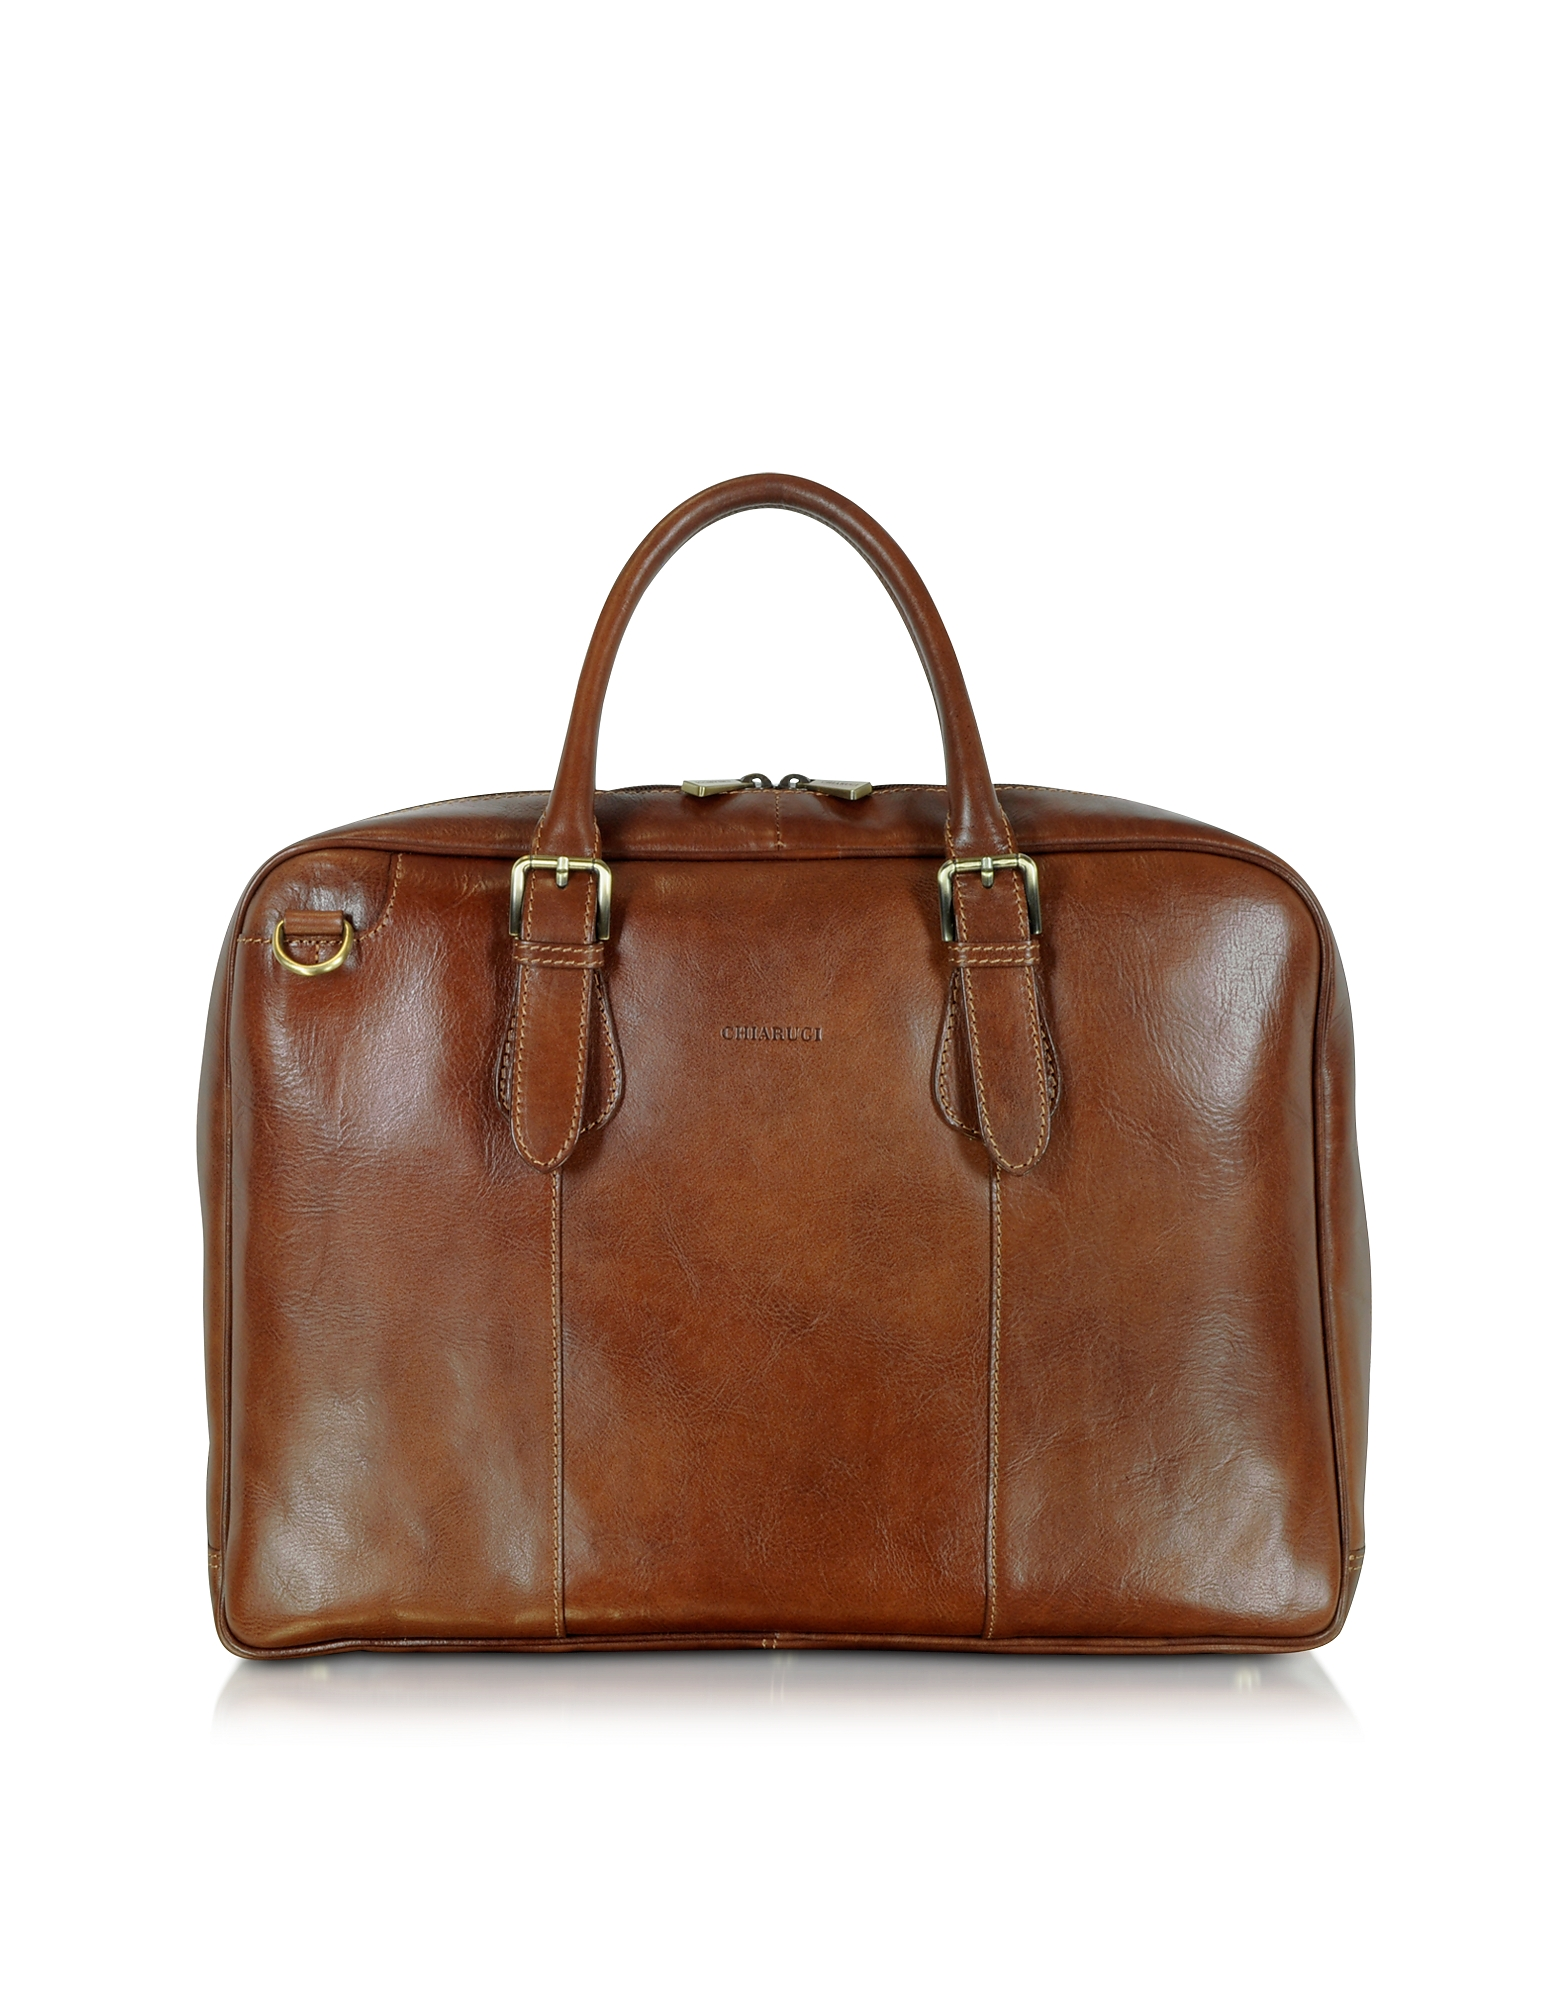 Chiarugi Designer Briefcases, Brown Double Handle Leather Briefcase